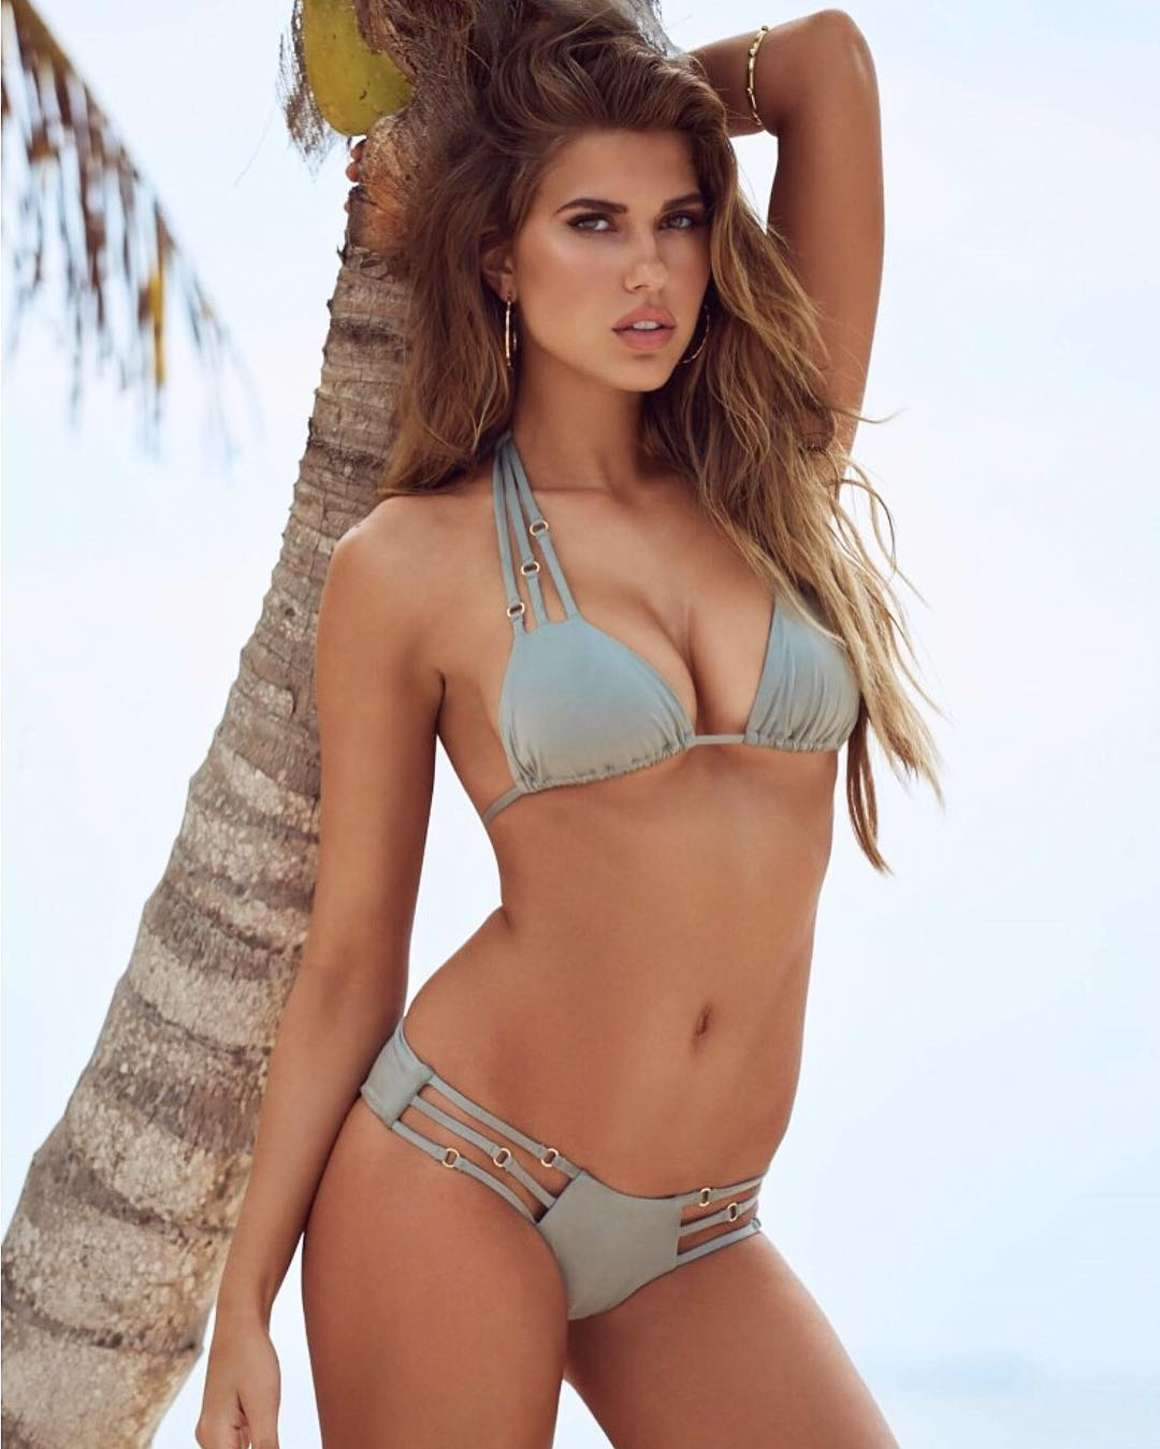 Instagram Kara Del Toro naked (14 foto and video), Topless, Sideboobs, Instagram, bra 2020